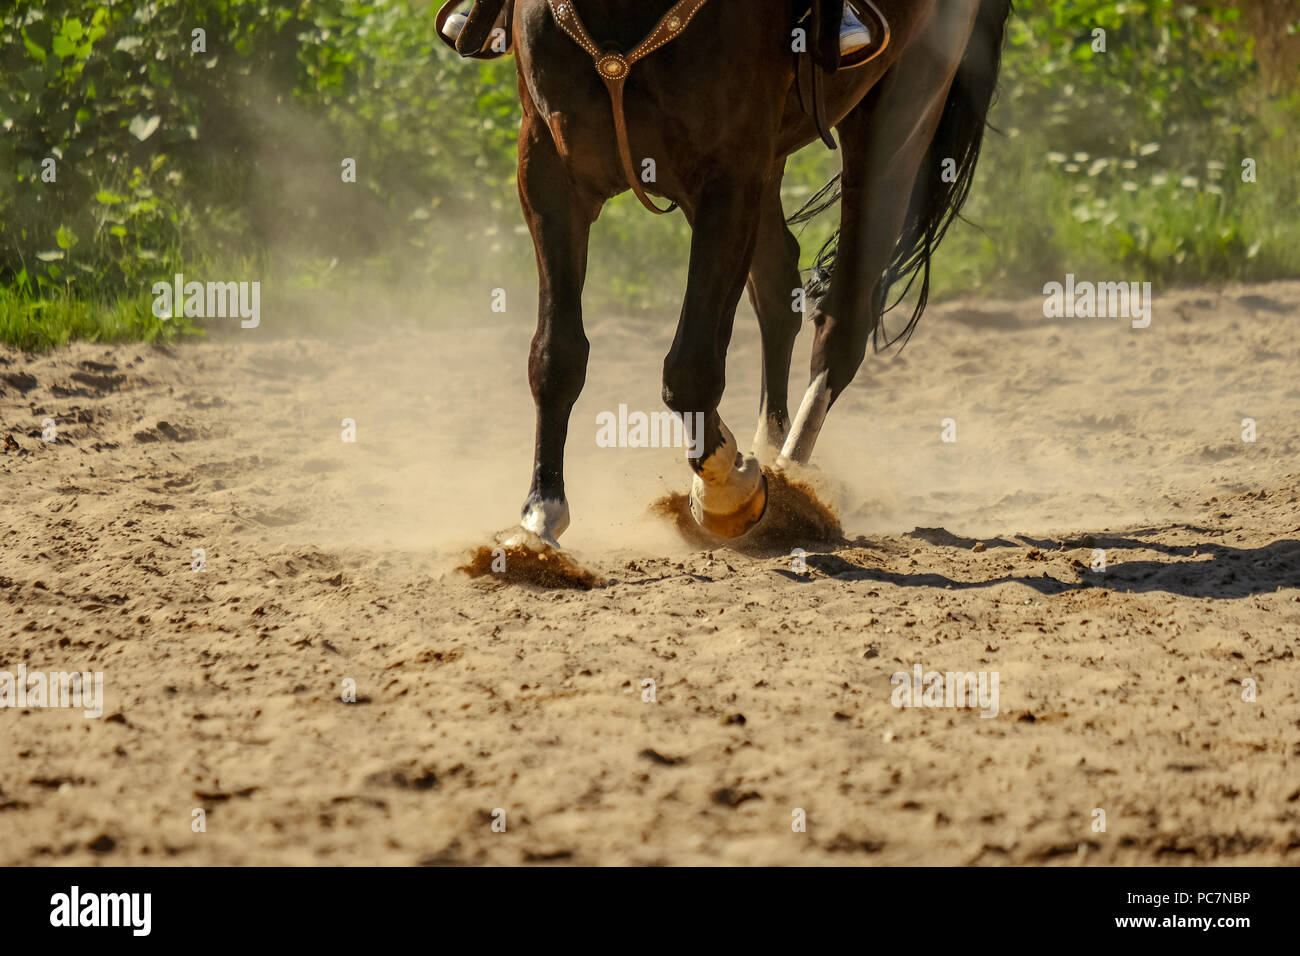 brown horse feet making dust in sand field. running gallop in summer - Stock Image